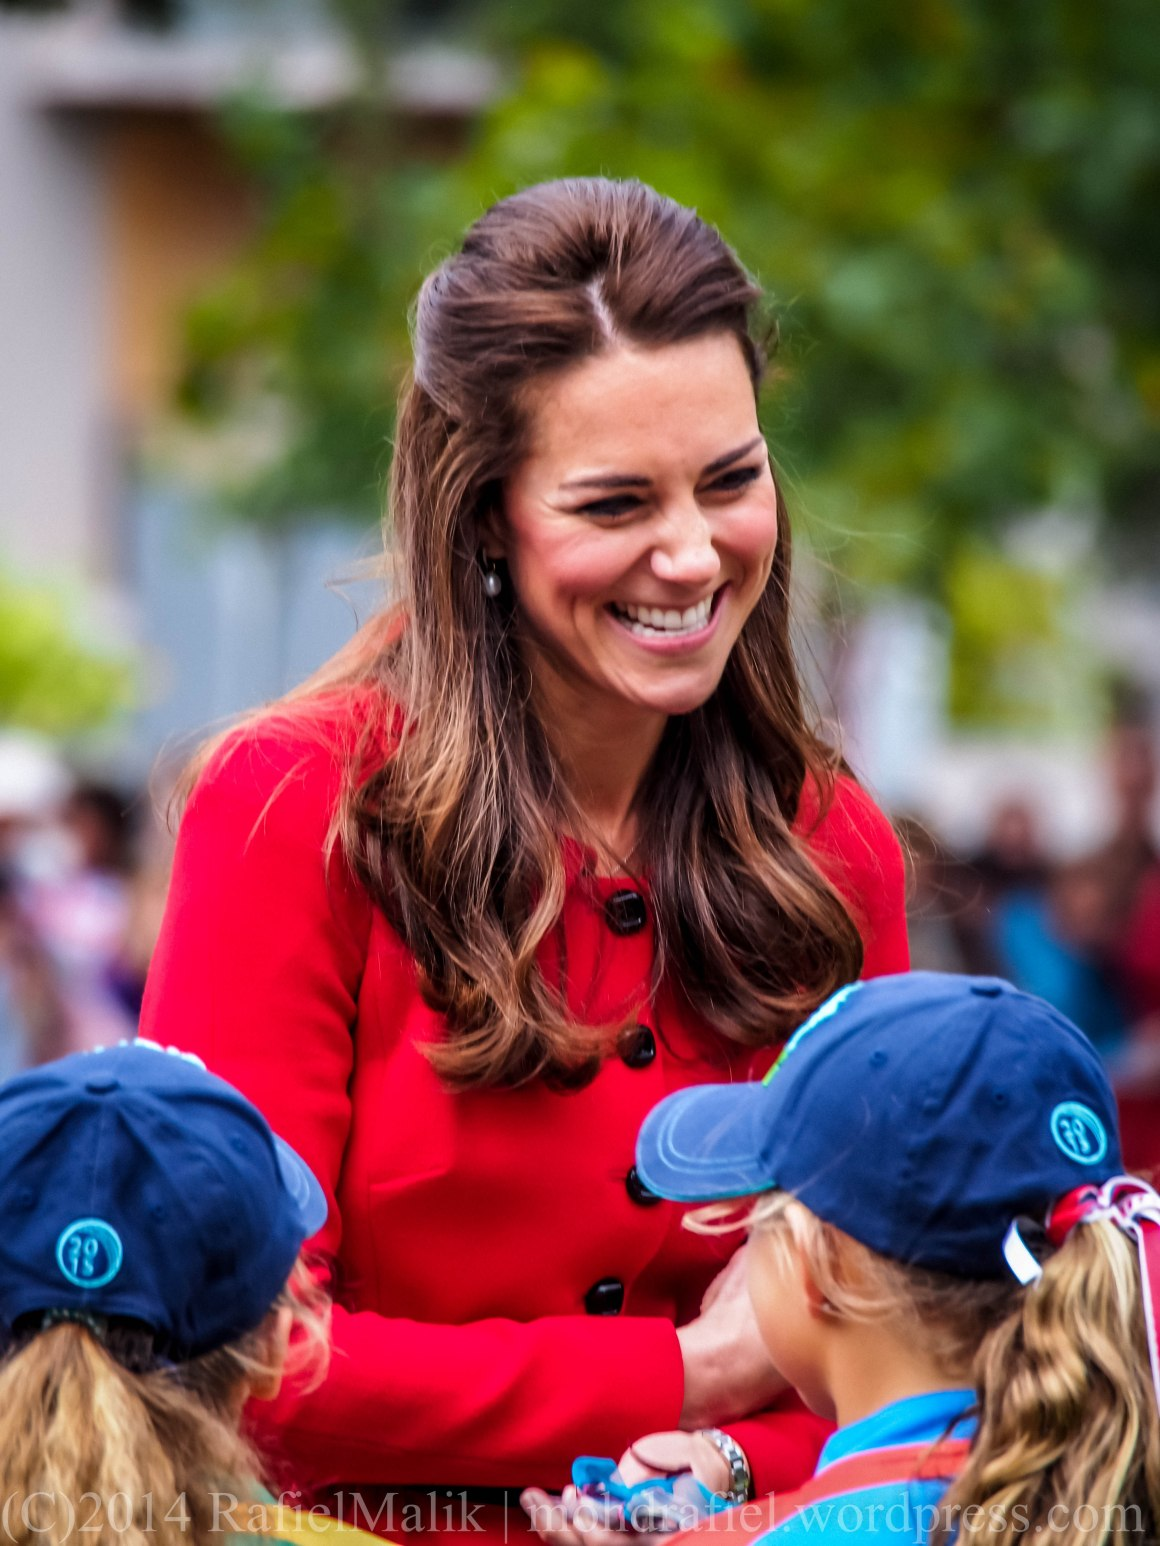 DUKE AND DUCHESS OF CAMBRIDGE | ROYAL VISIT 2014 | CHRISTCHURCH